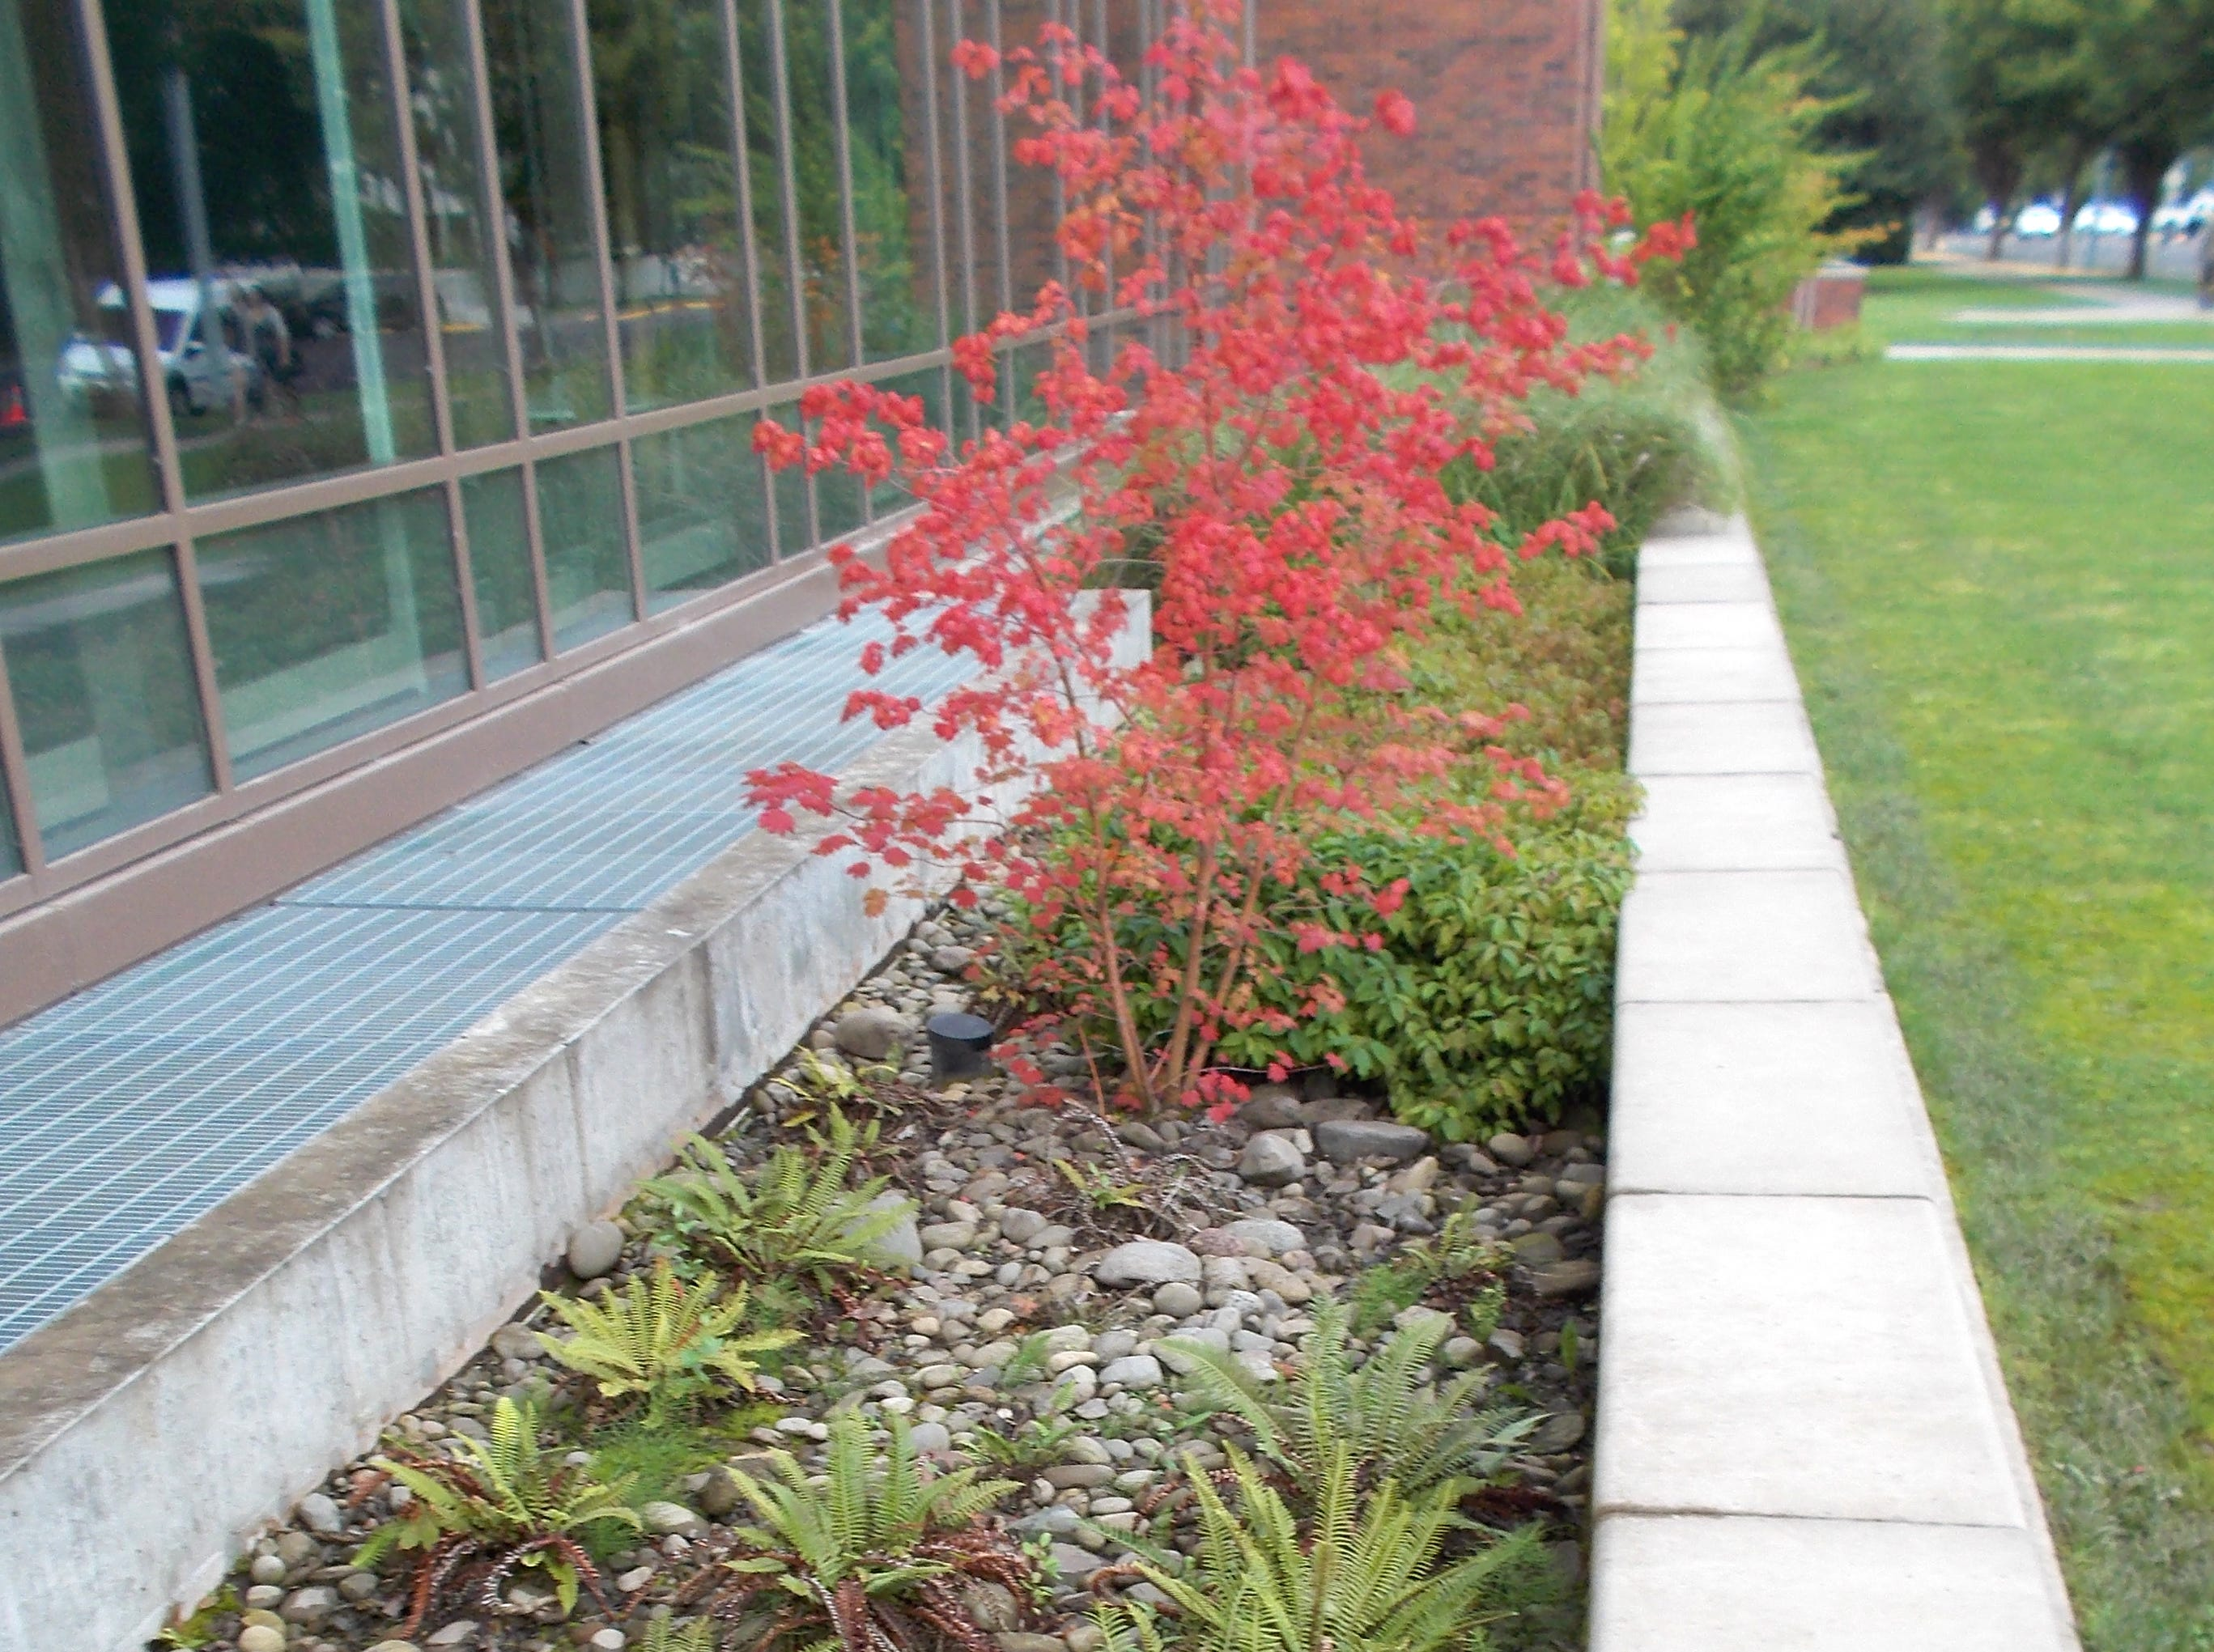 Stormwater filtration planters at Willamette University's Ford Hall are examples of the type of on-site stormwater retention projects that would be required of developers in smaller cities under the new permit.